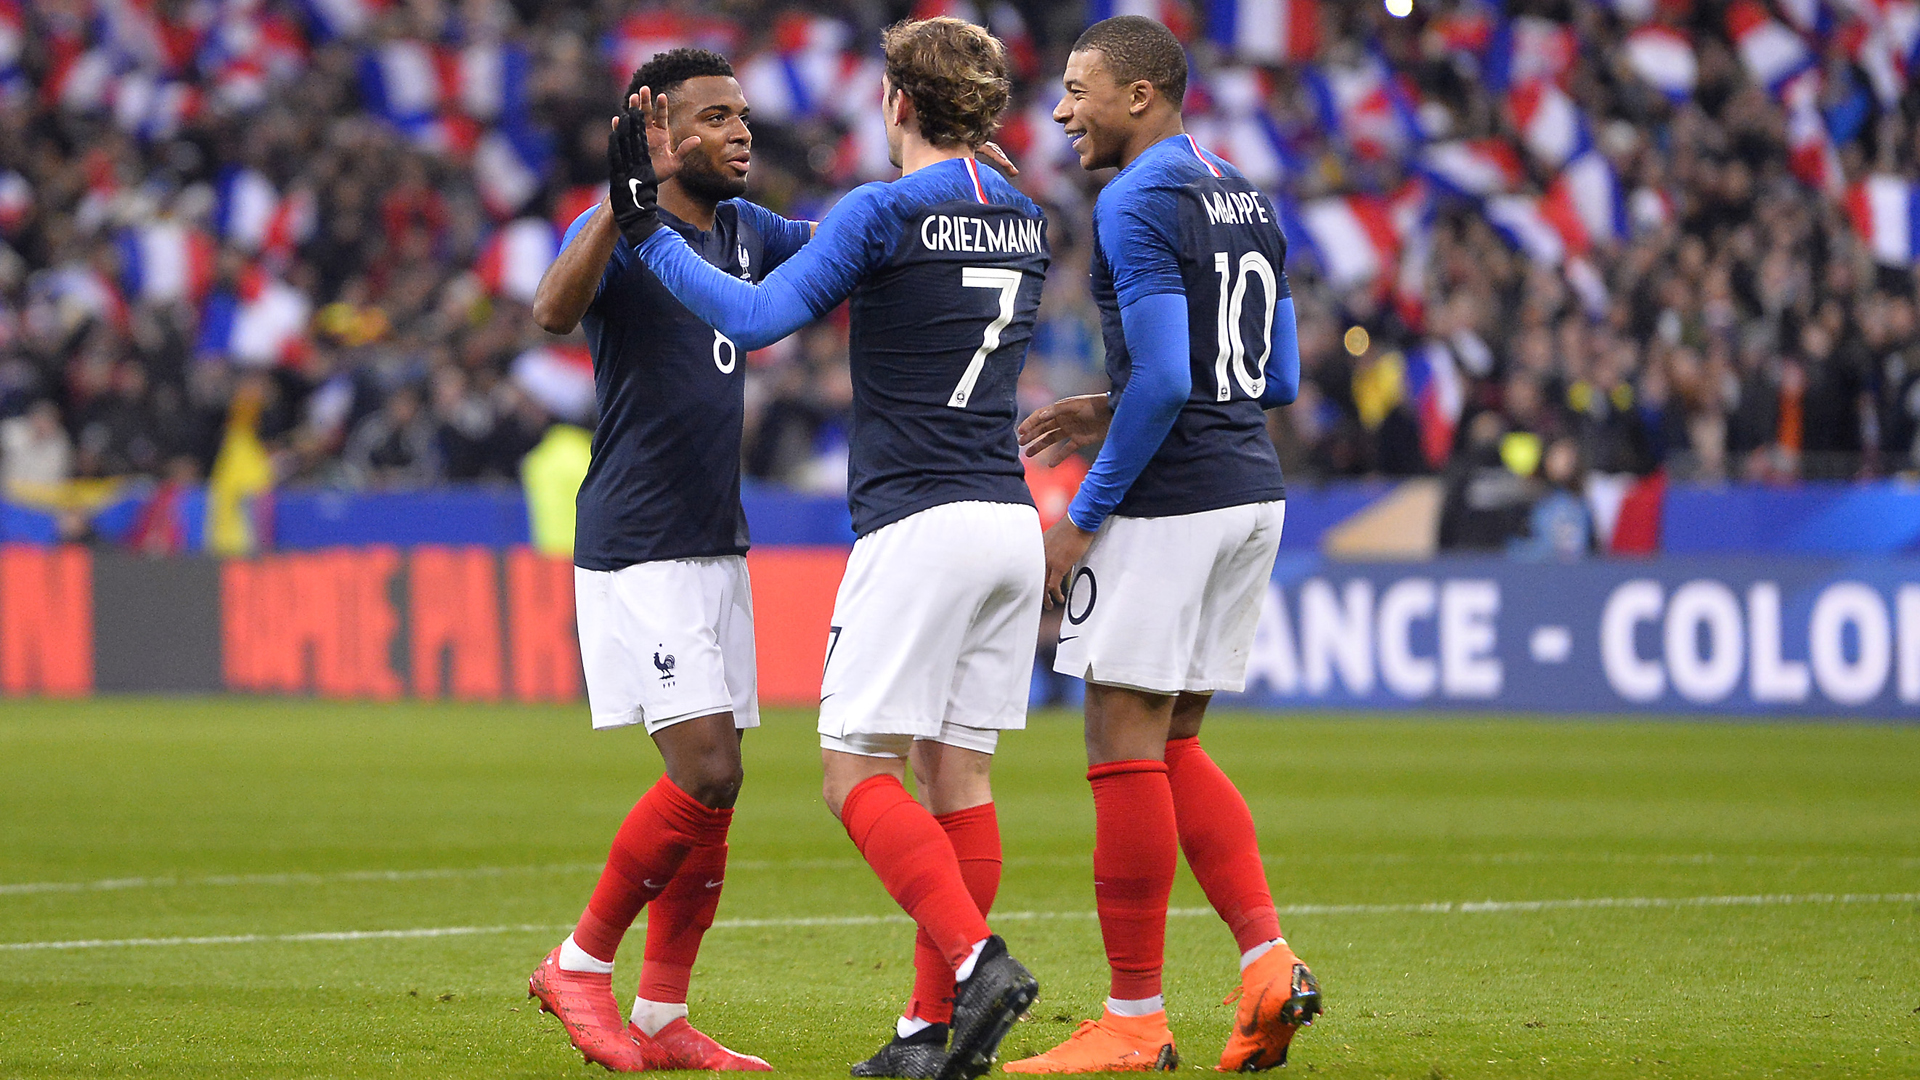 France awarded penalty in first VAR overrule at World Cup